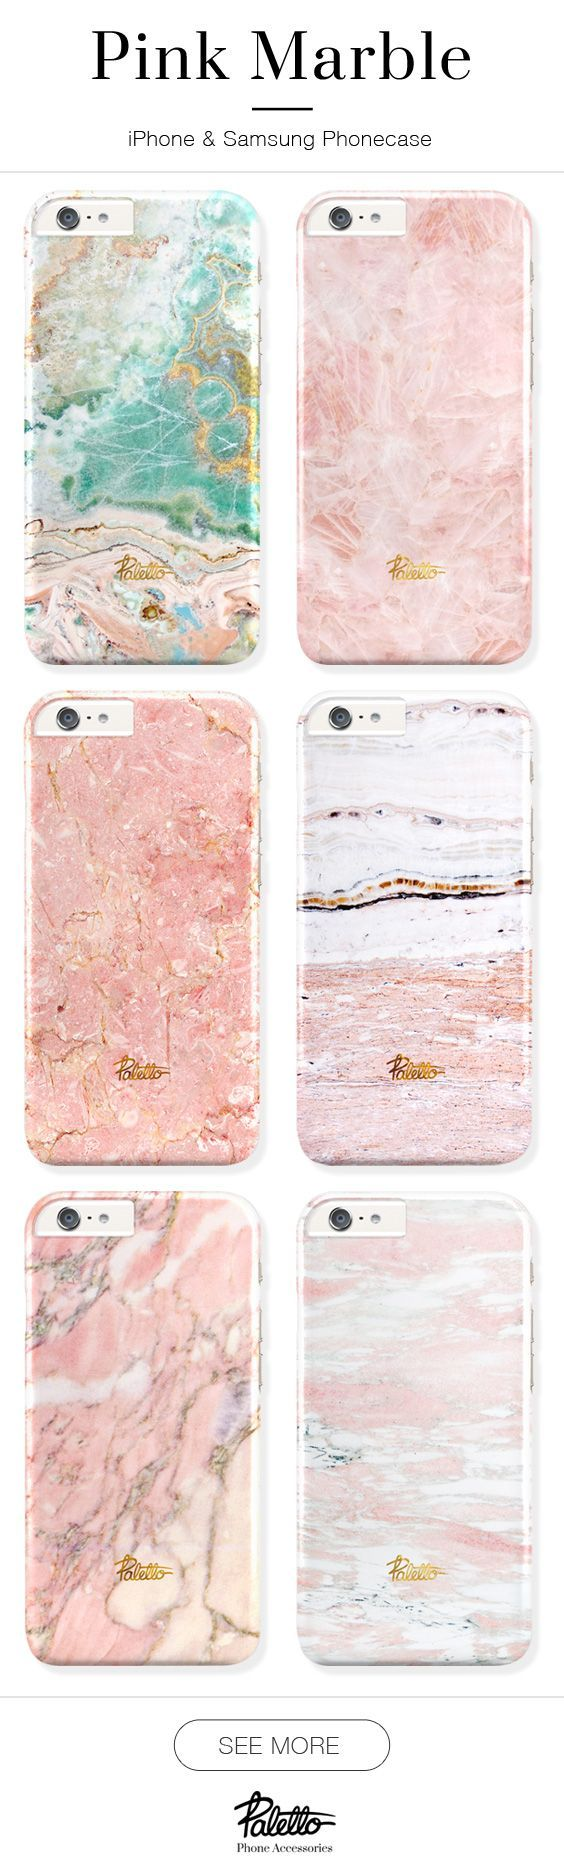 PINK marble phone case. Available for iPhone 6/6s, 6/6s plus, 5/5s/5c & Samsung galaxy S5, S6. Free shipping worldwide. #PhoneCase